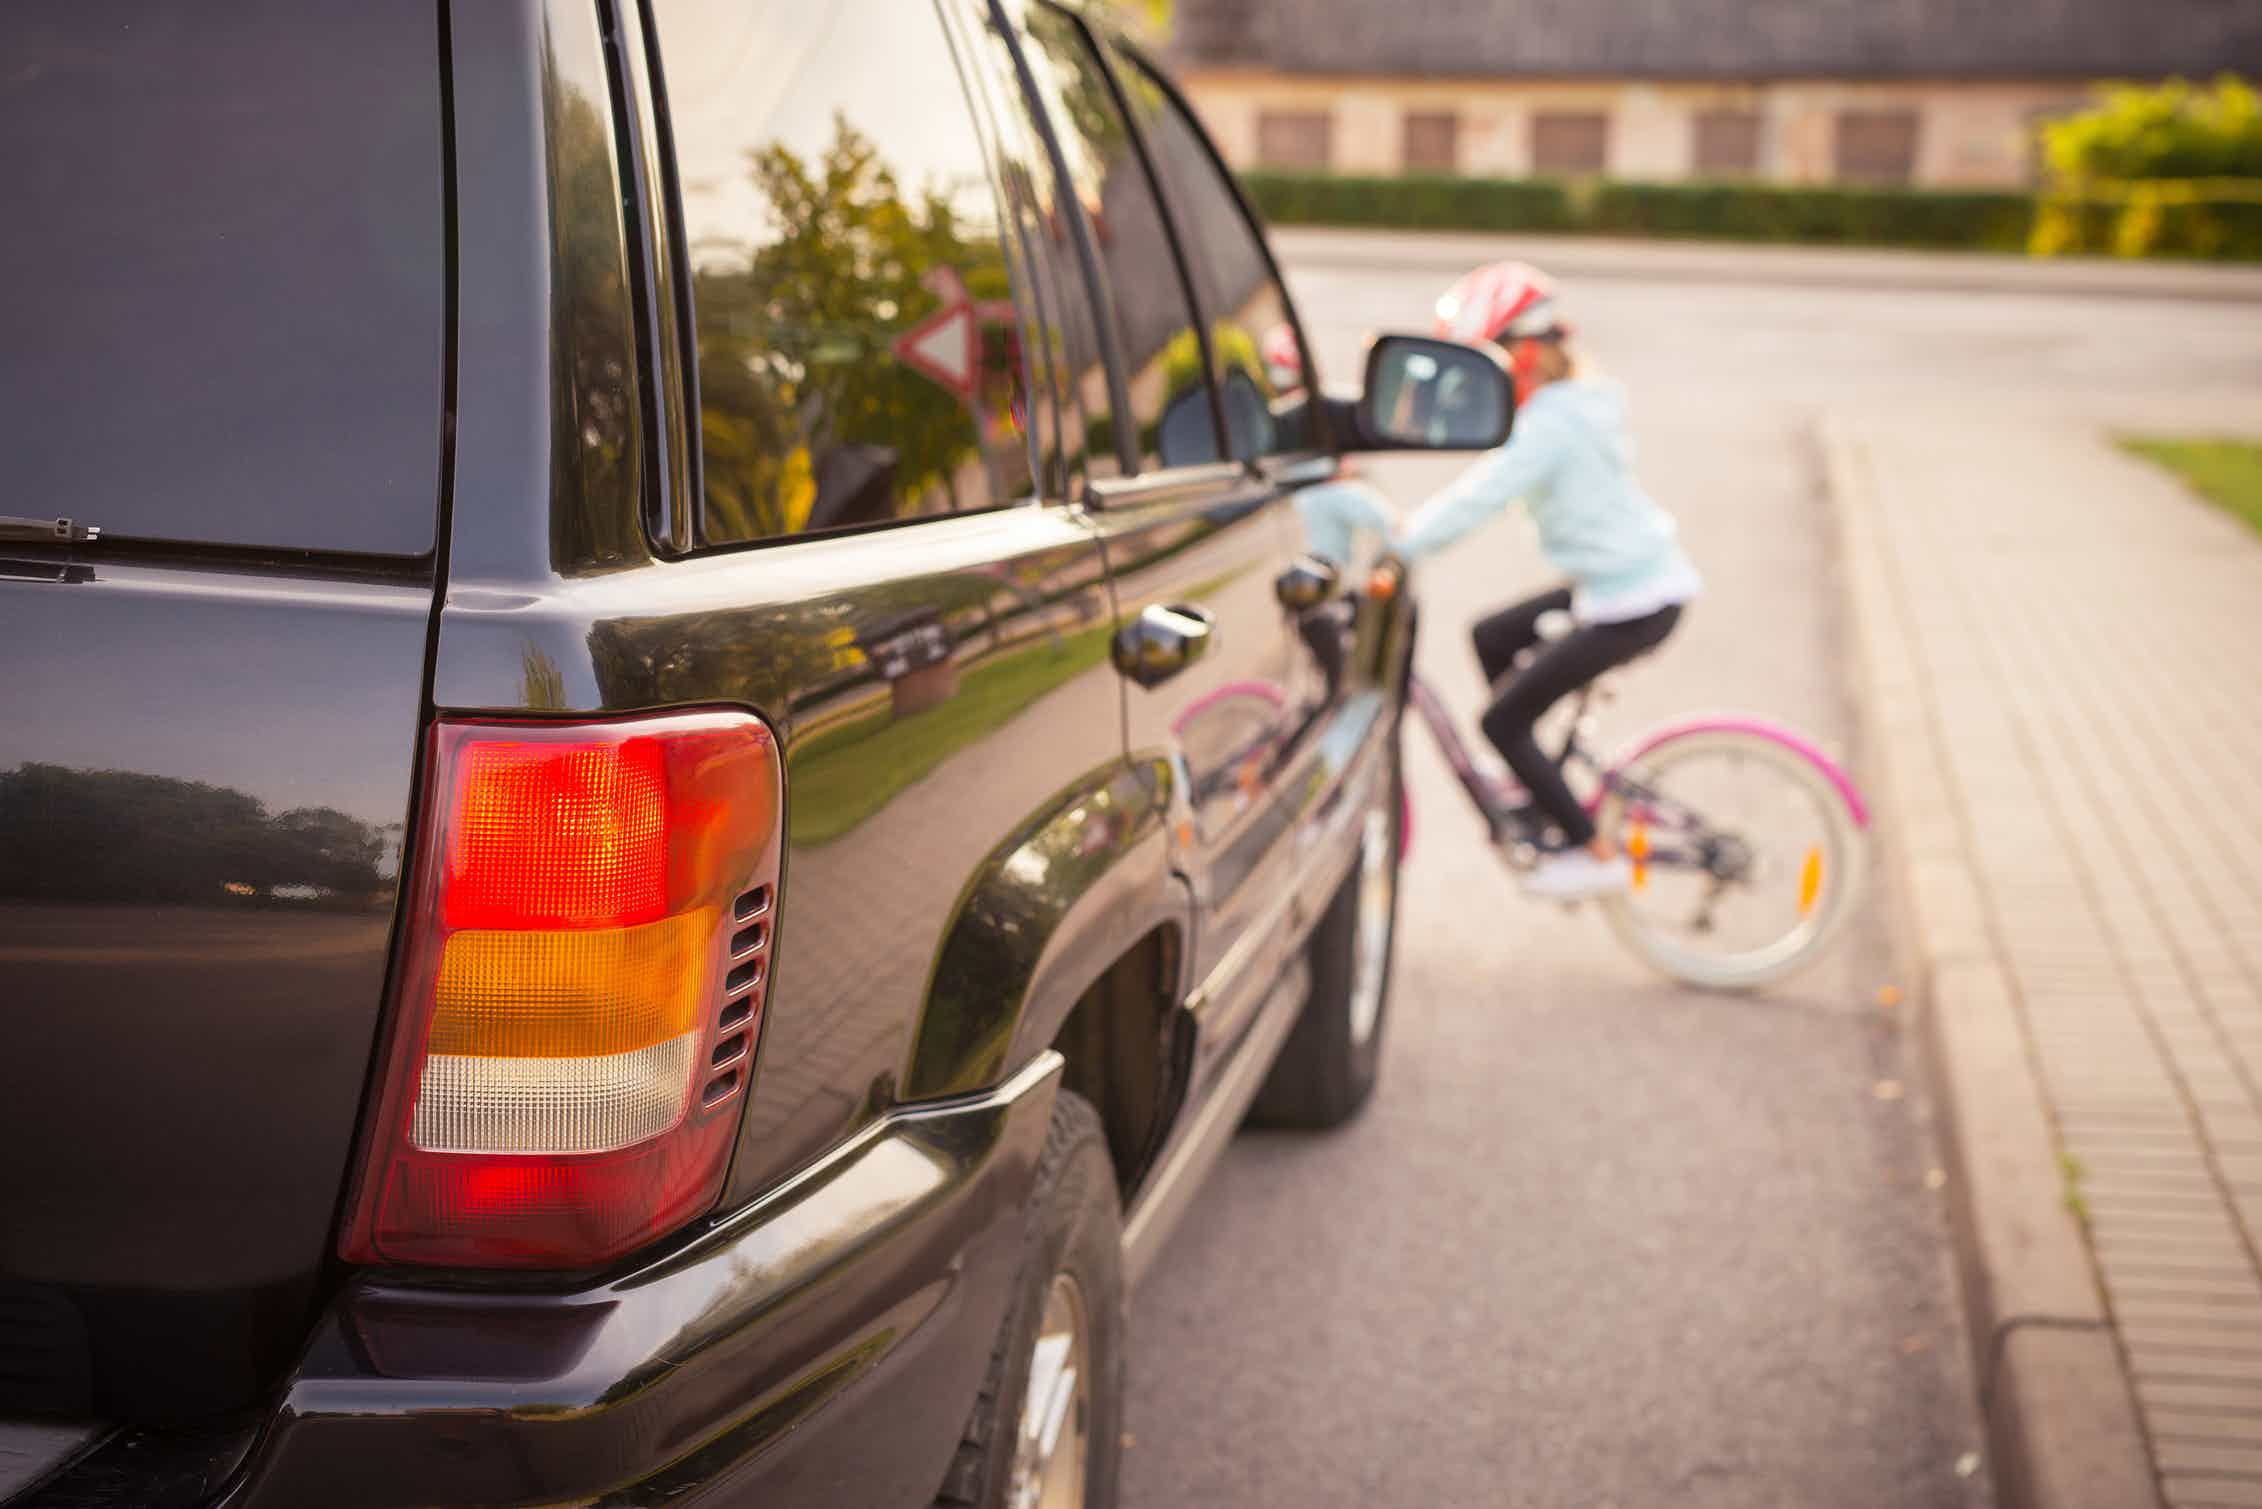 Poor vision: Do drivers always see what is happening on the road?